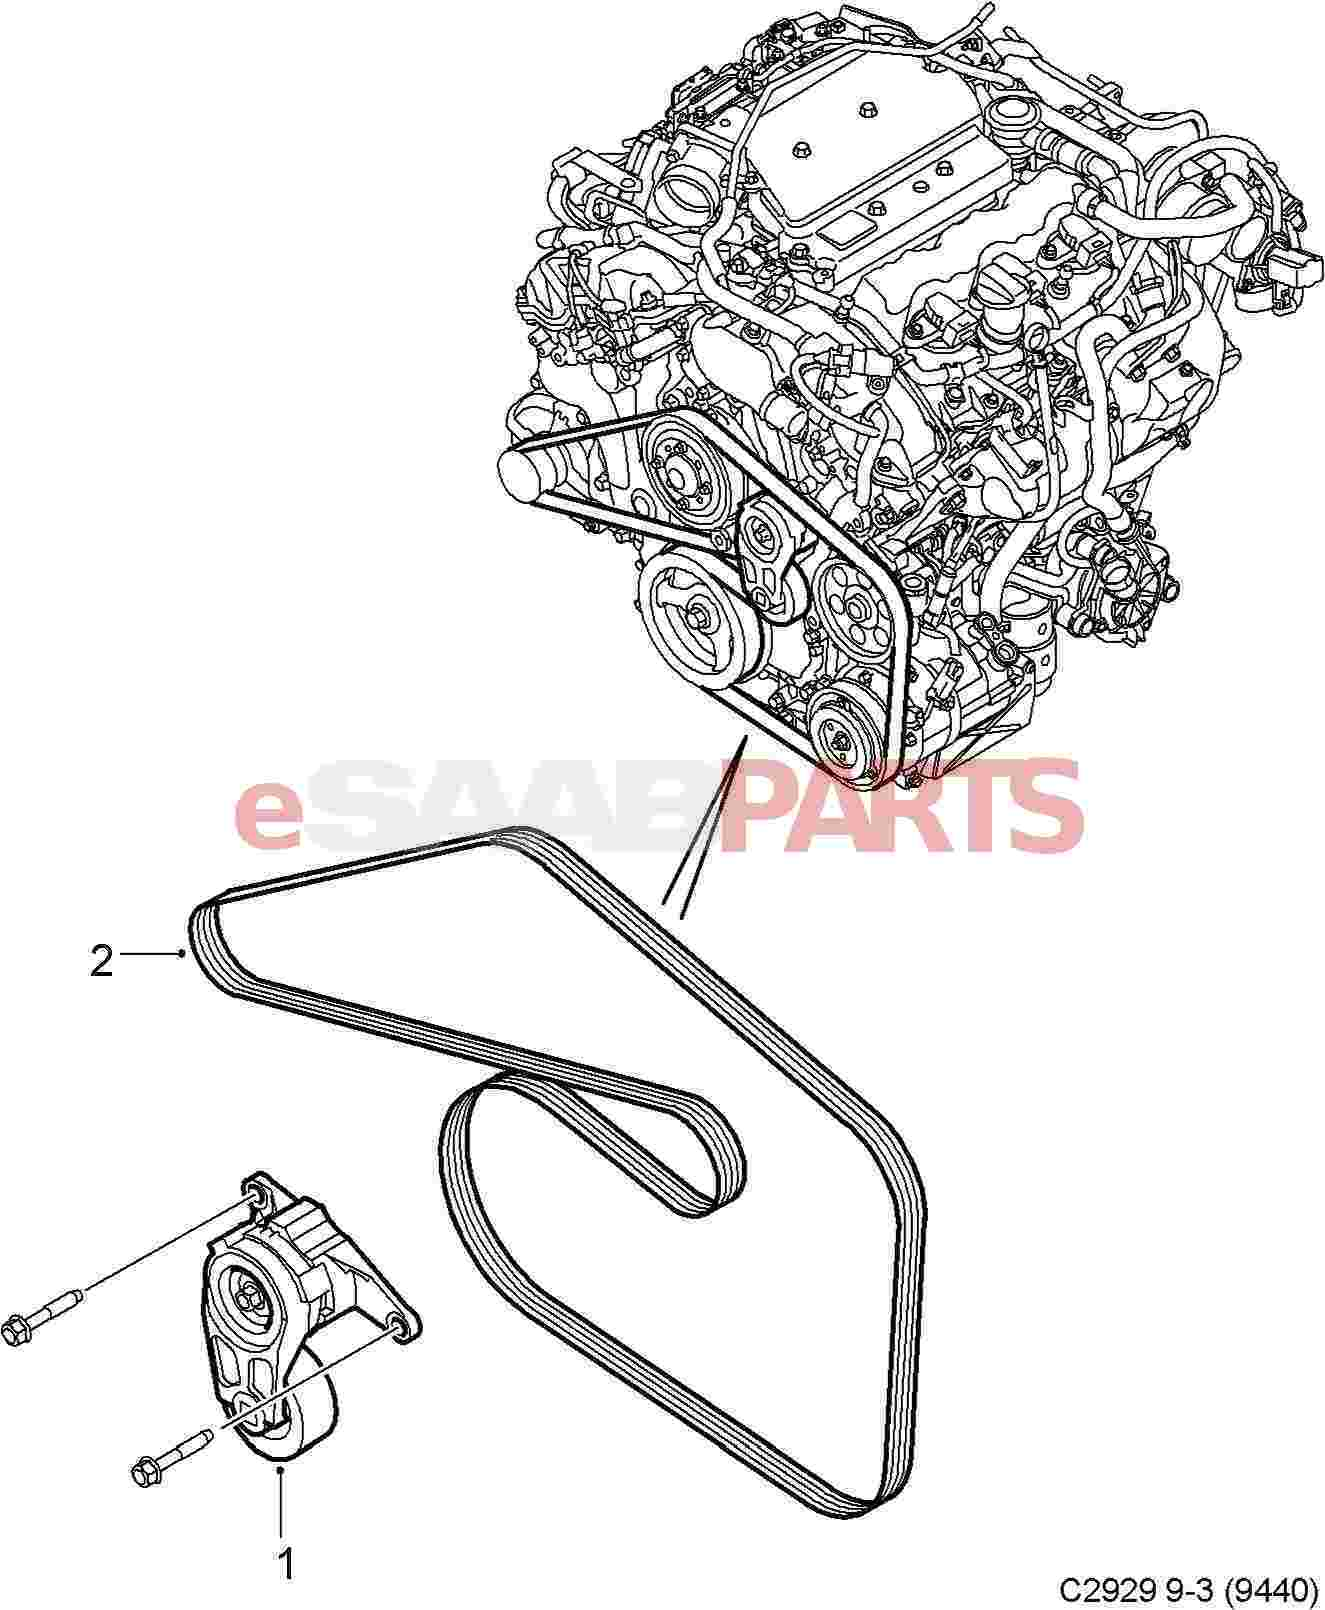 Saab 9 7x Wiring Harness Auto Electrical Diagram 2006 Part Diagrams